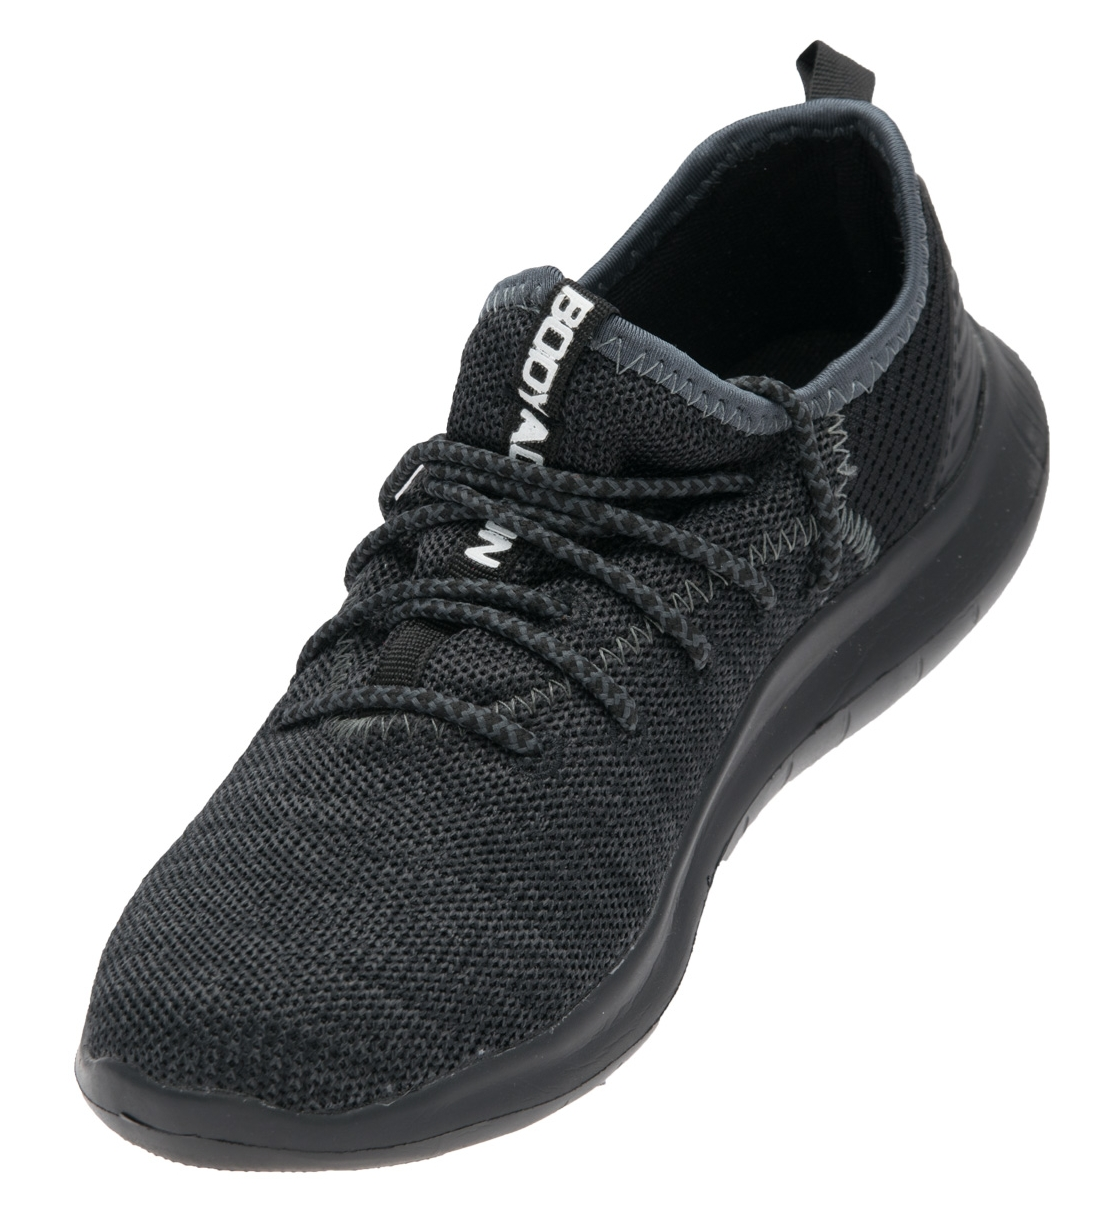 f54d8de262 ... Body Action Ανδρικό Παπούτσι Training Women Sport Shoes 091813 ...